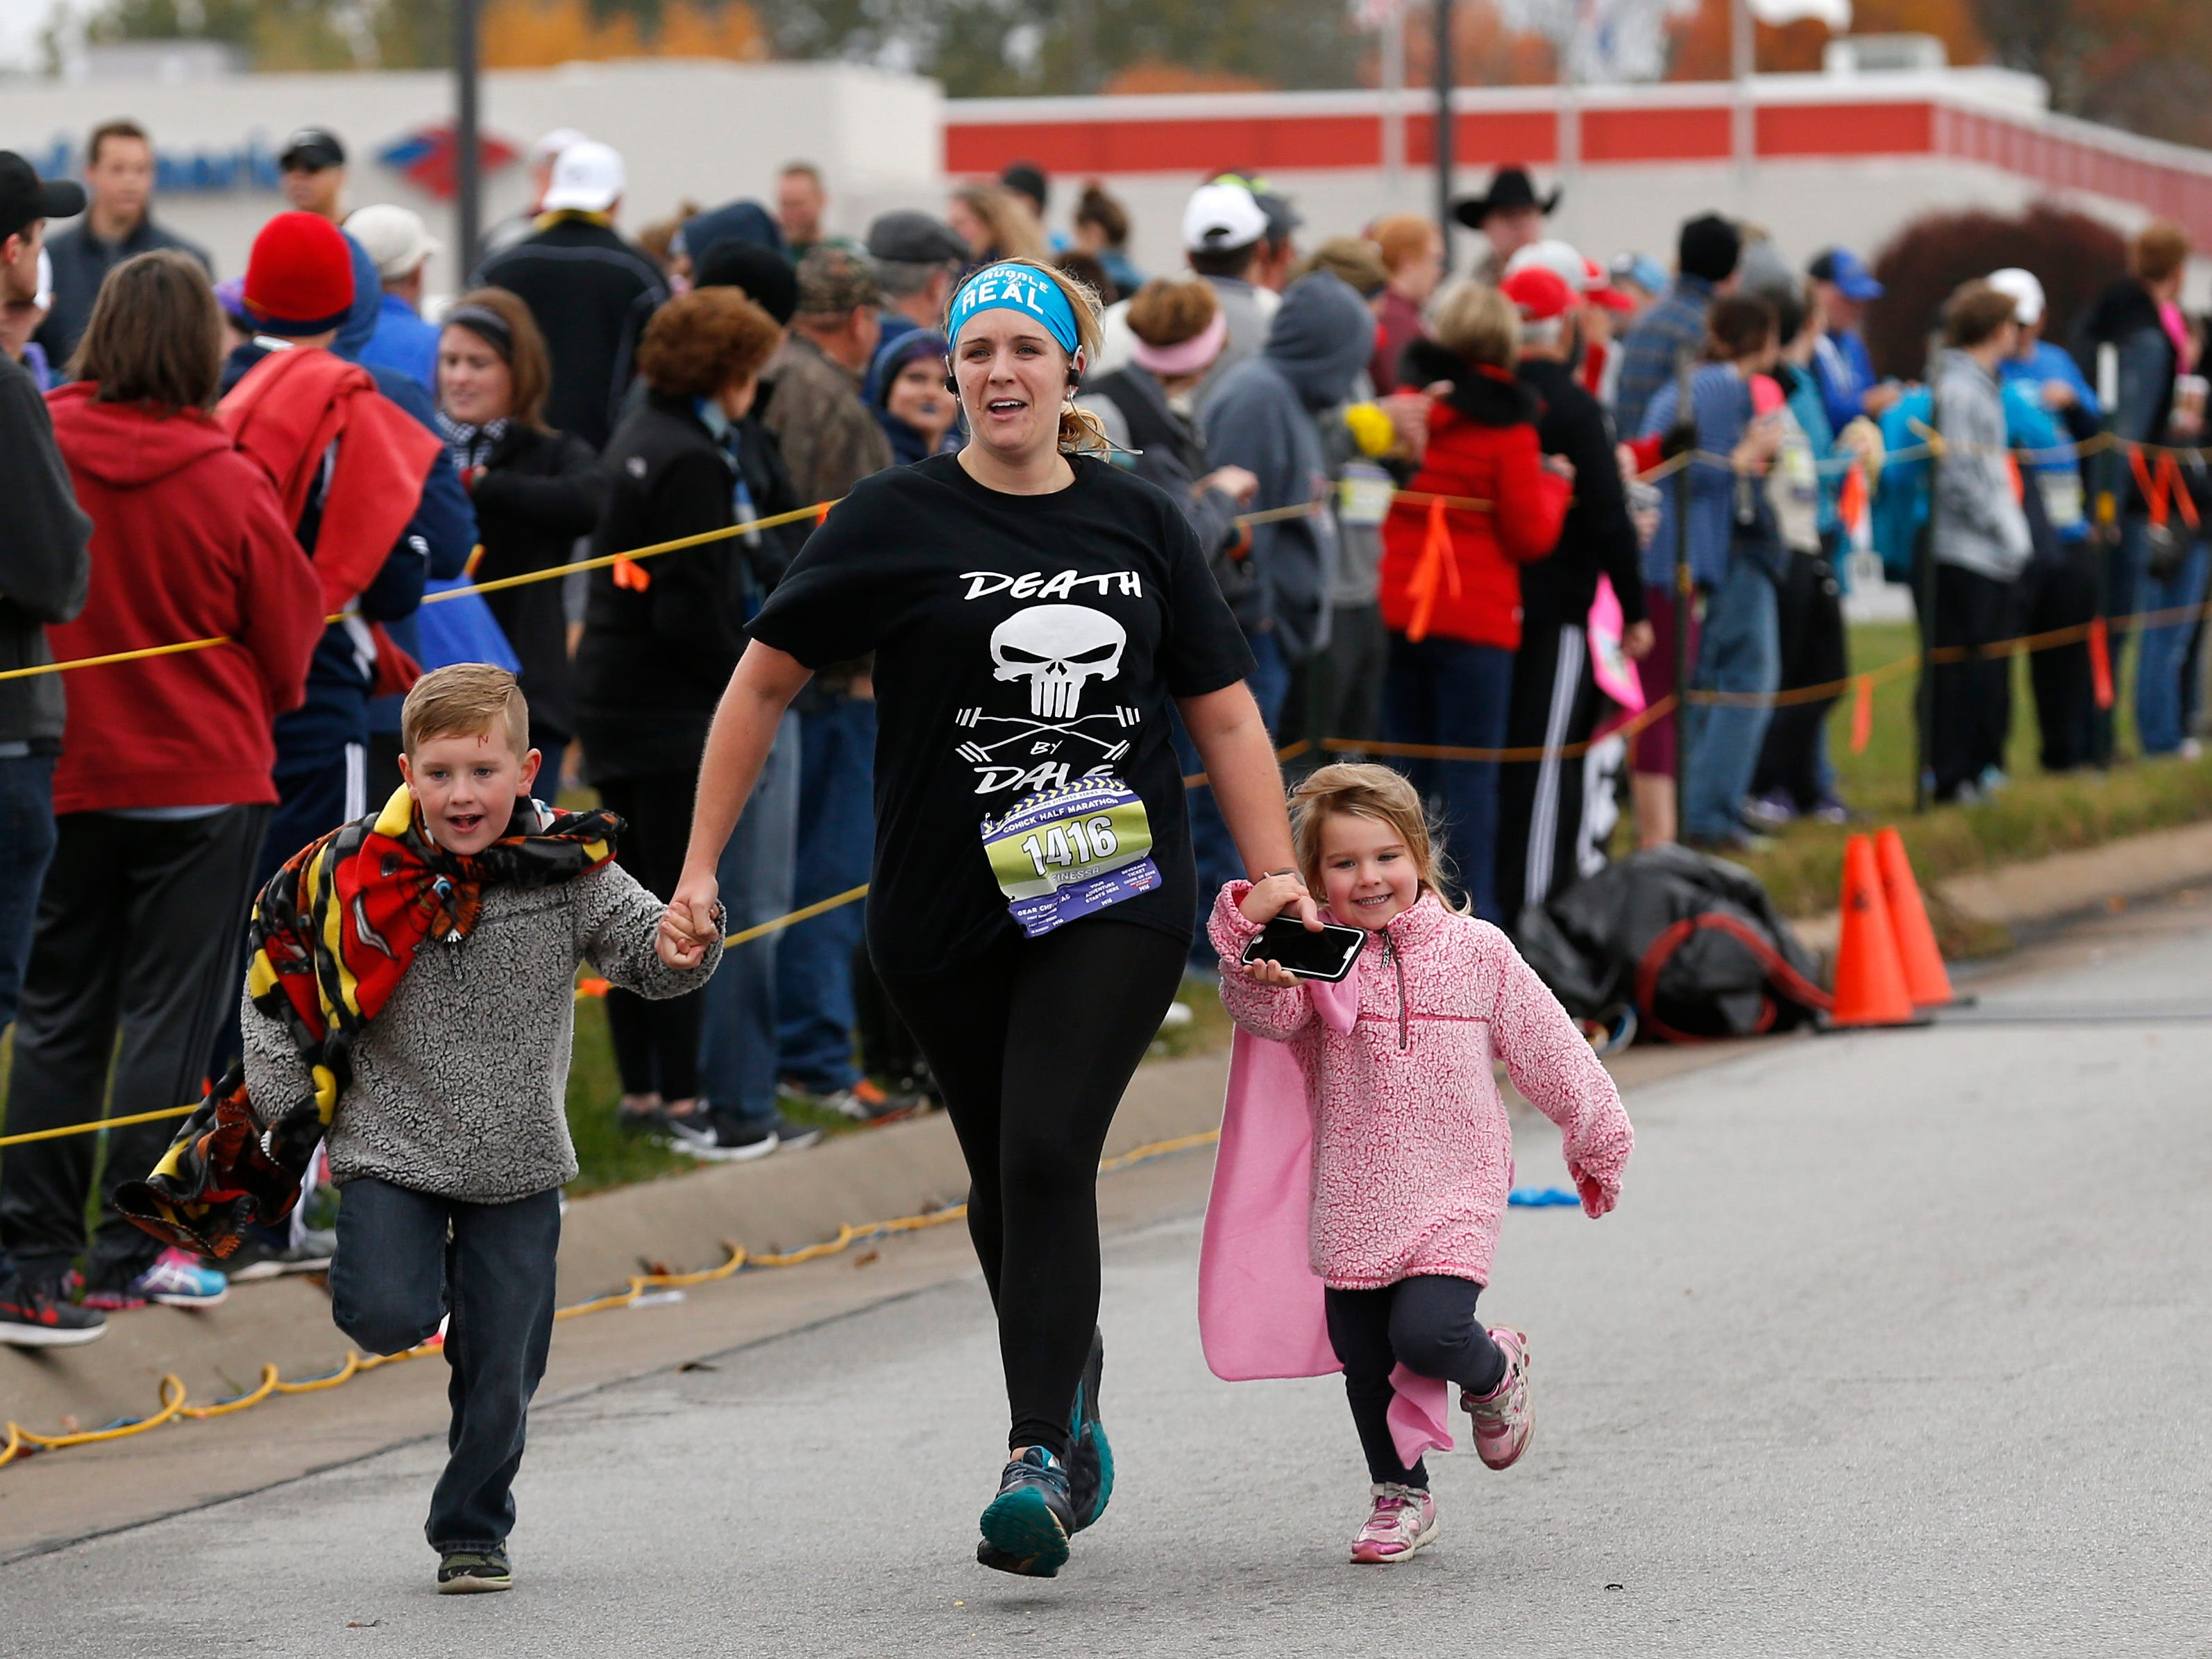 Participants cross the finish line of the Cohick Half Marathon on Sunday, Nov. 4, 2018.